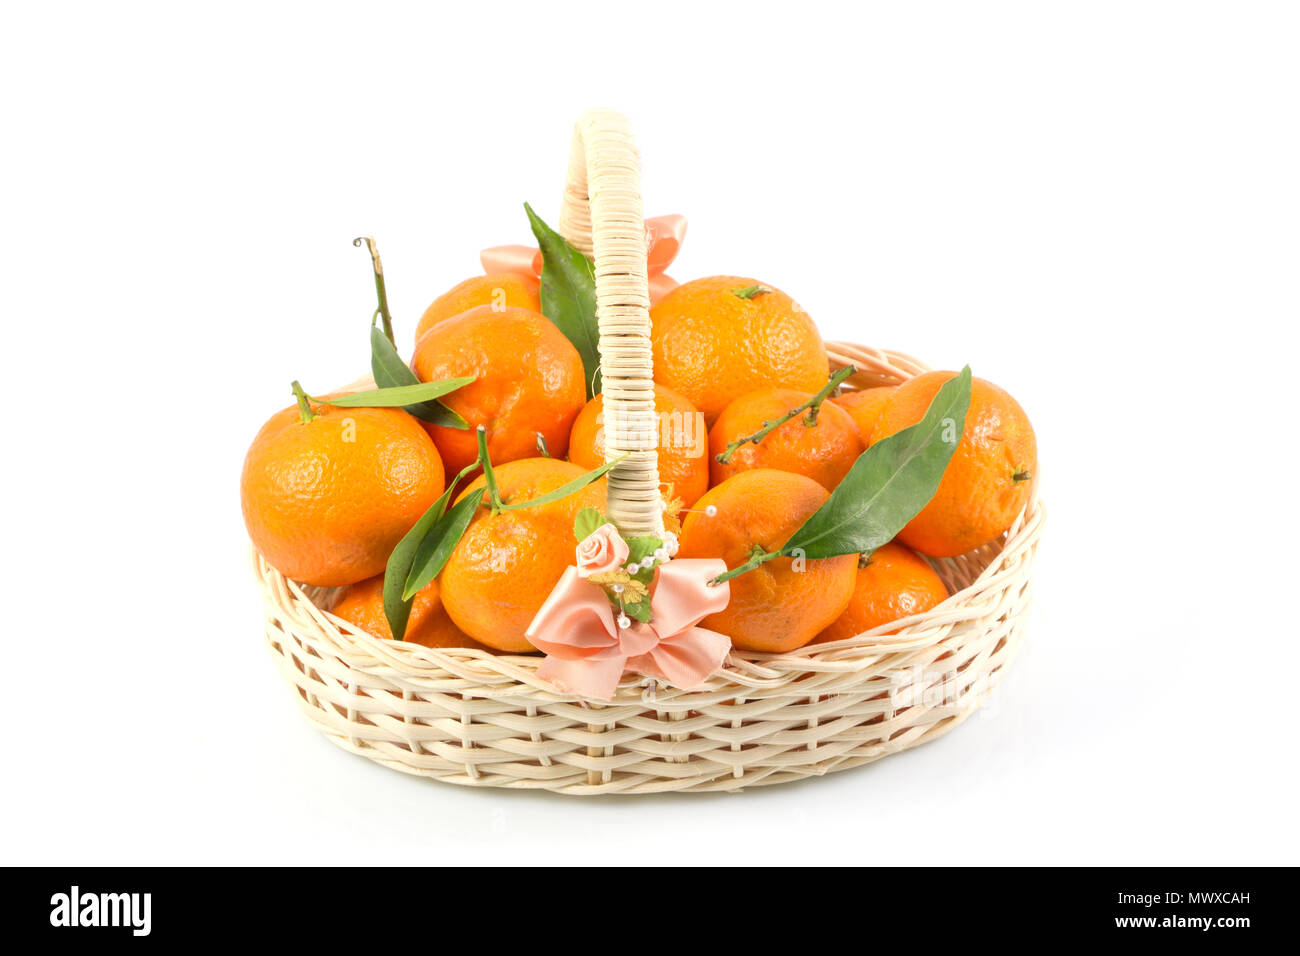 Bunch of fresh tangerines oranges on basket, Fresh orange in rattan baskets gift for Chinese New Year in concept isolated white background. - Stock Image